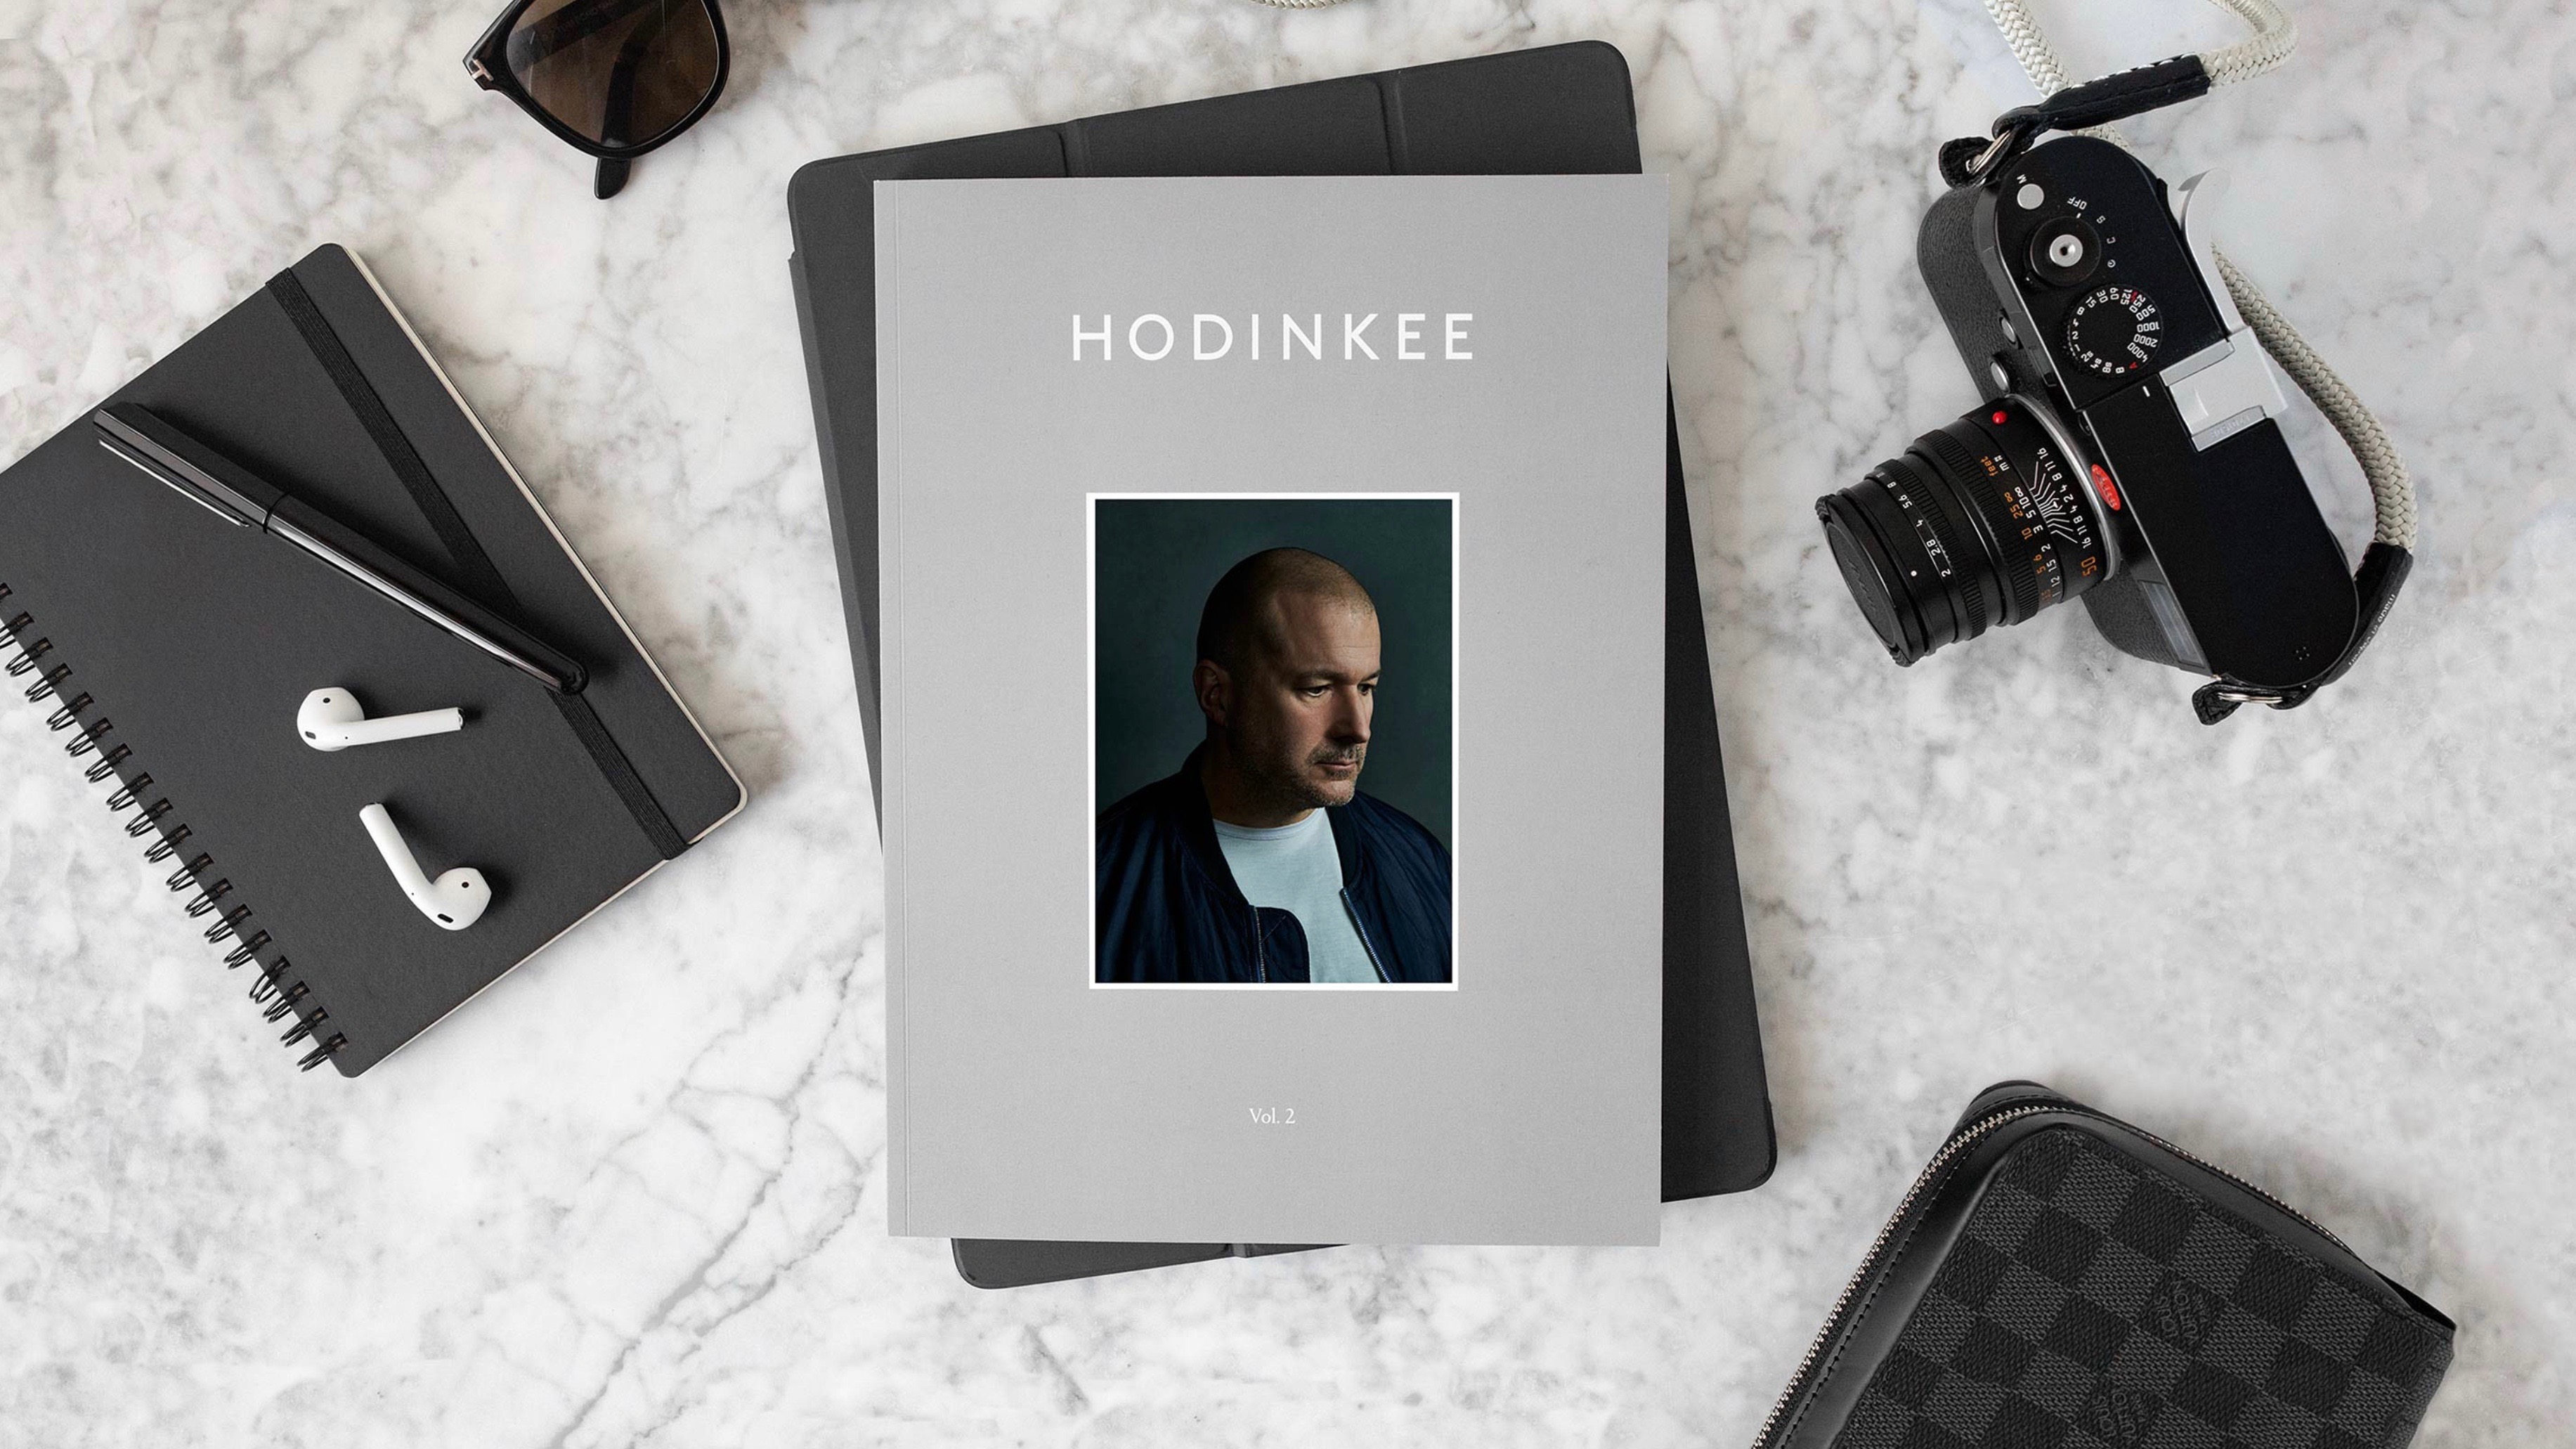 Jony Ive opens up about Apple Watch origin and the watch he 'admires most' in Hodinkee interview